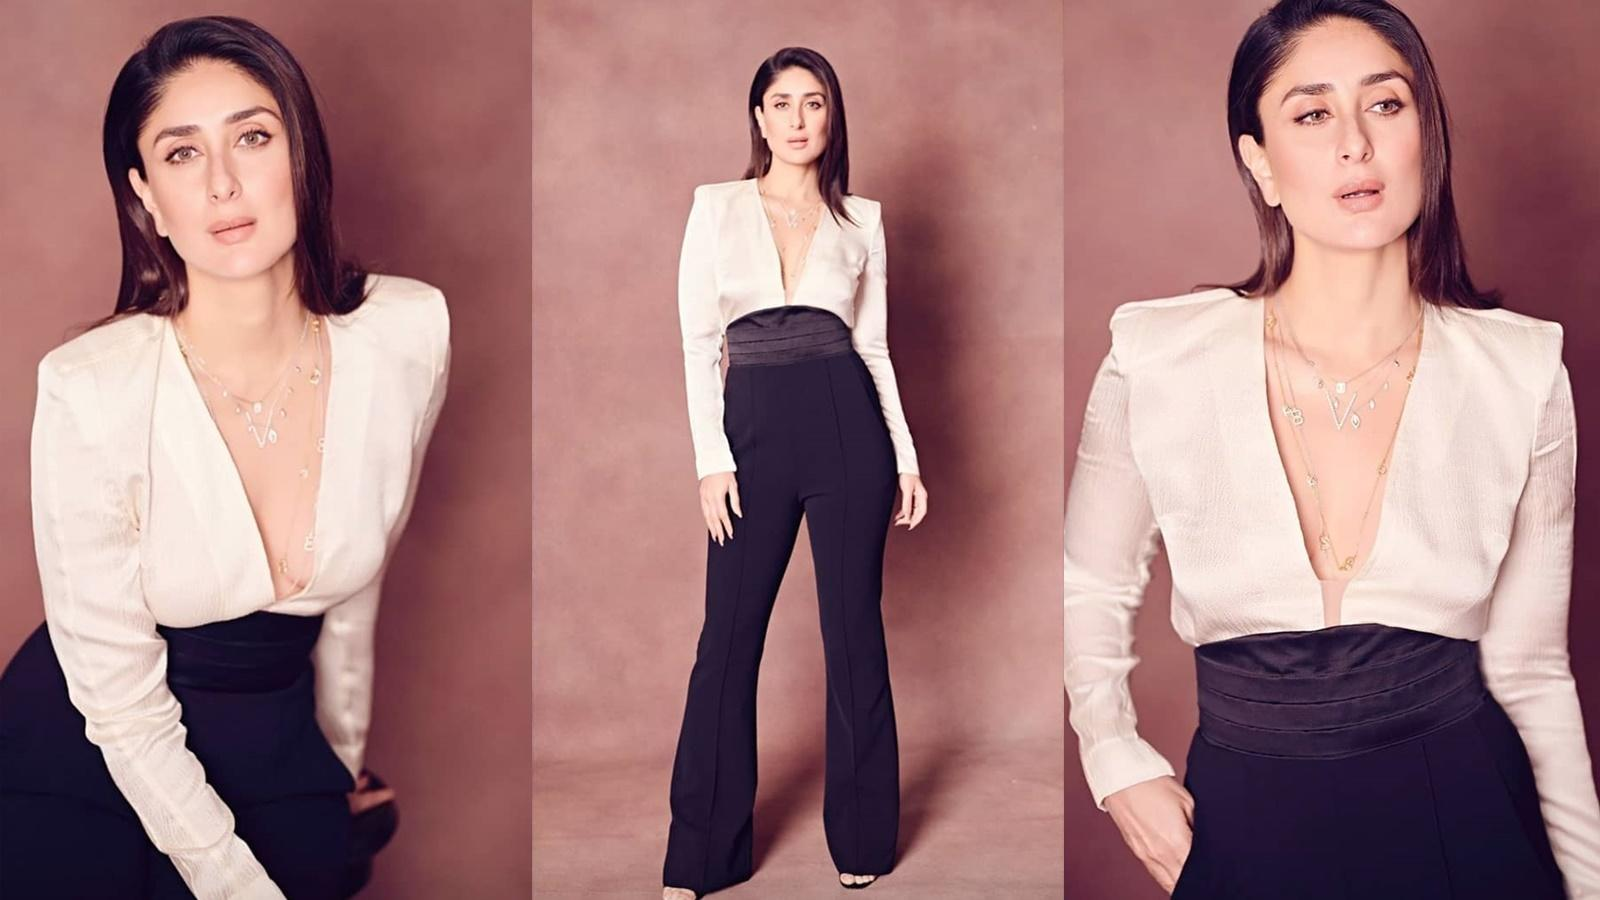 kareena-kapoor-looks-epitome-of-beauty-in-plunging-neckline-top-and-bell-bottom-pants